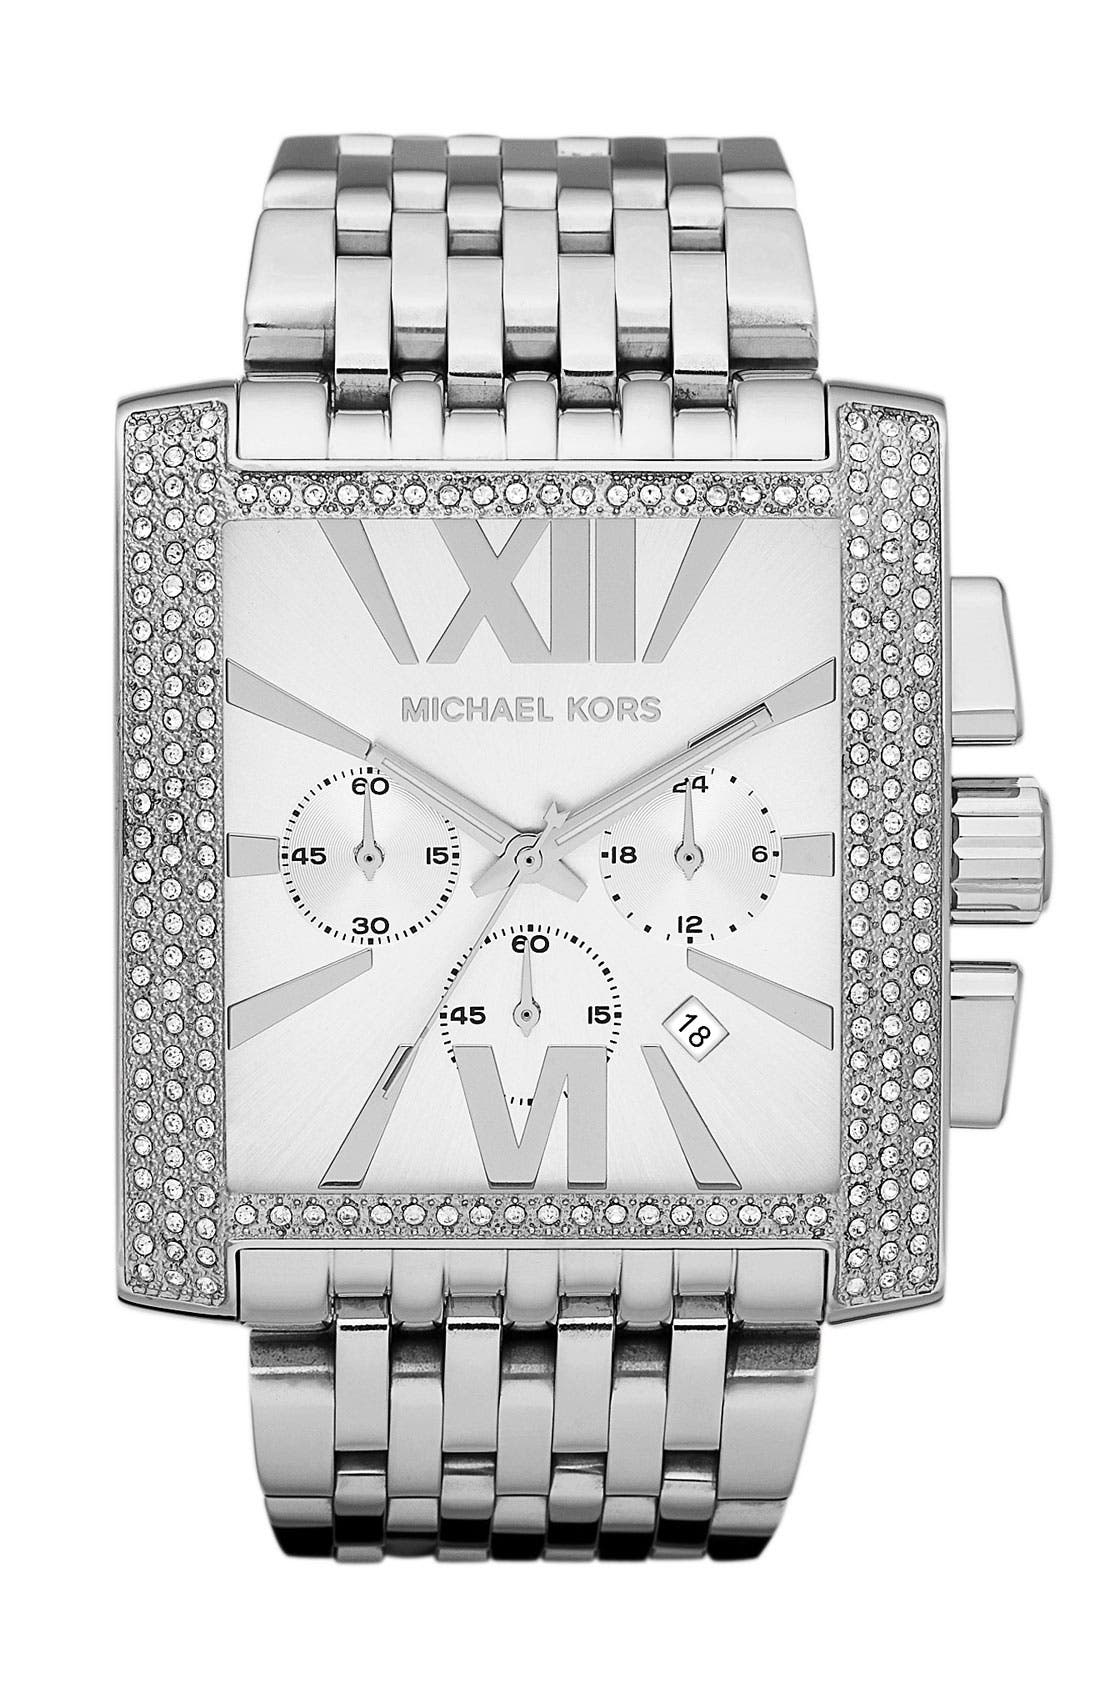 Main Image - Michael Kors 'Gia' Chronograph Bracelet Watch